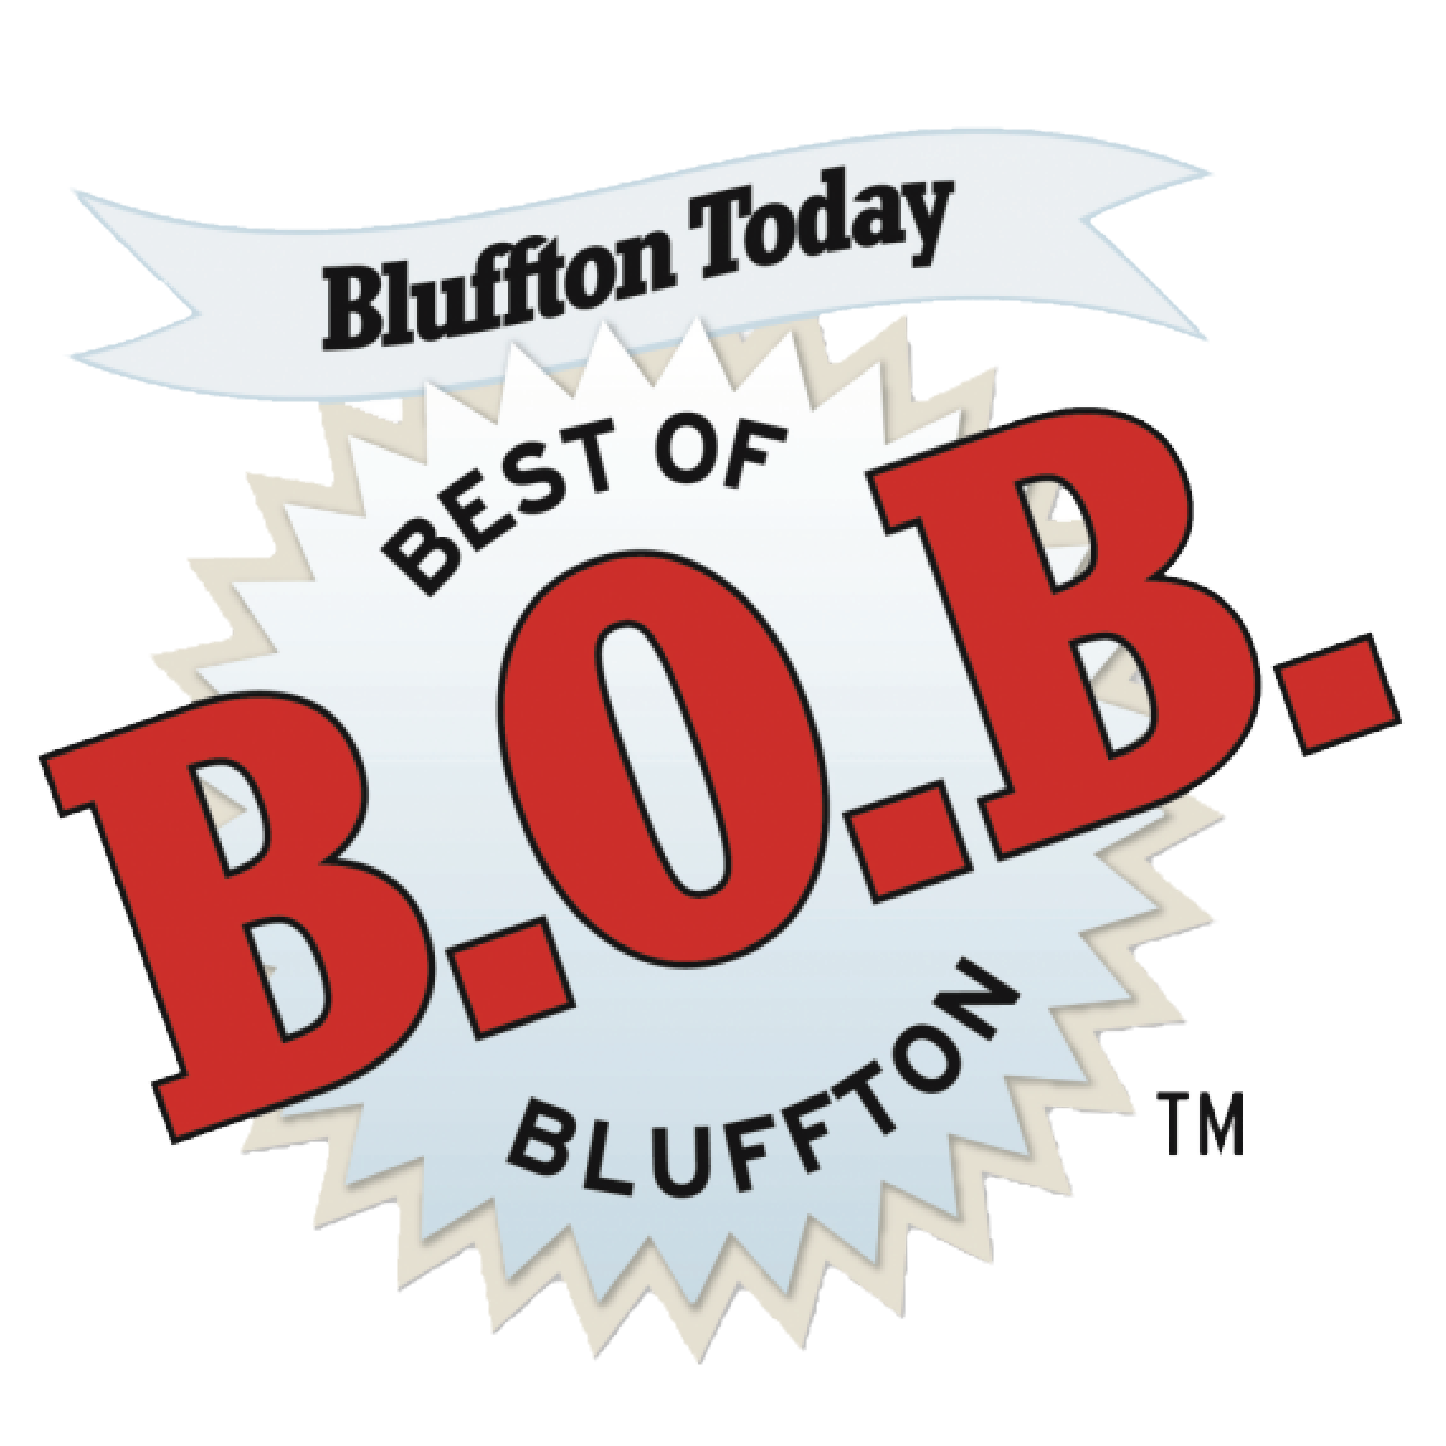 Bluffton Today Best of Bluffton